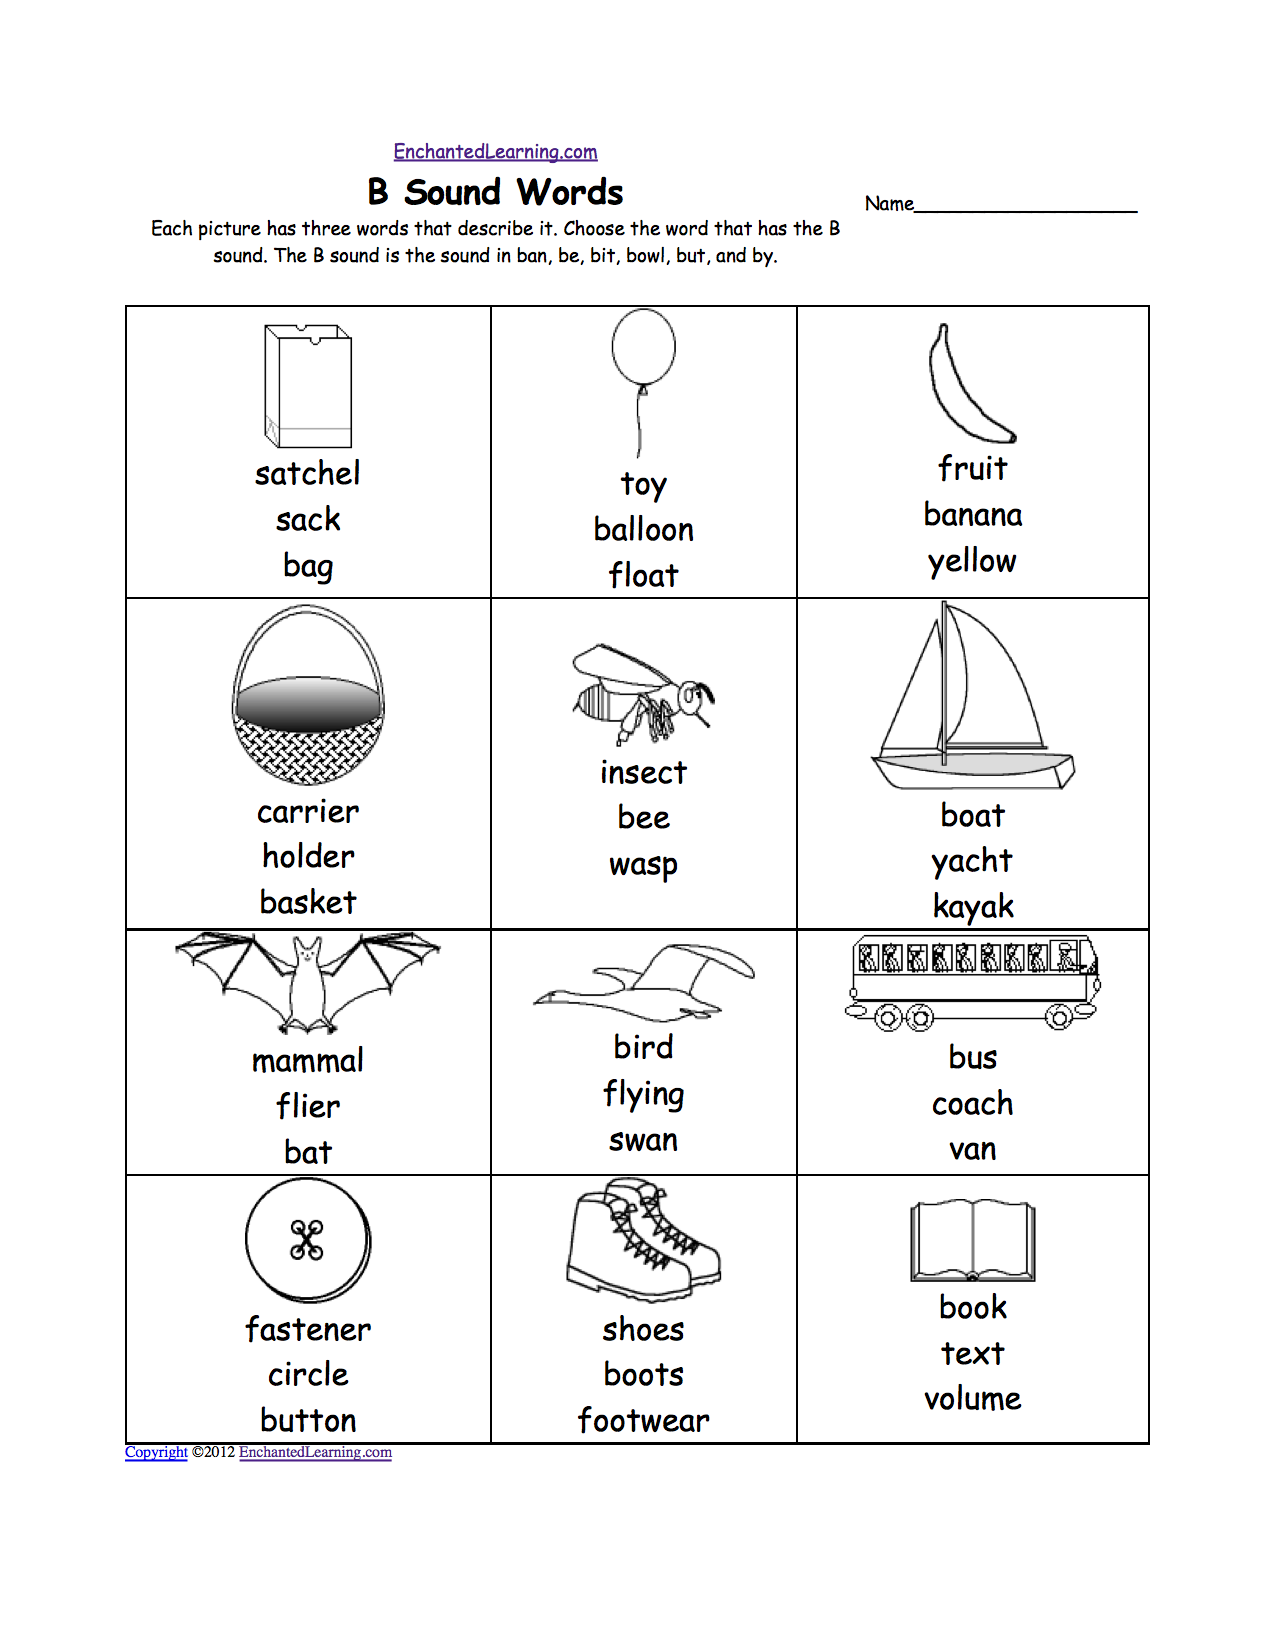 Aldiablosus  Terrific Phonics Worksheets Multiple Choice Worksheets To Print  With Outstanding Quotbquot Sound Phonics Worksheet Multiple Choice Each Picture Has Three Words That Describe It Choose The Word That Has A Quotbquot Sound The Quotbquot Sound Is The Sound  With Enchanting The Gift Of The Magi Worksheets Also Grade  Free Worksheets In Addition Printable Independent Life Skills Worksheets And Farm Animals Worksheets For Kindergarten As Well As K Maths Worksheets Additionally Algebra Mixture Word Problems Worksheet From Enchantedlearningcom With Aldiablosus  Outstanding Phonics Worksheets Multiple Choice Worksheets To Print  With Enchanting Quotbquot Sound Phonics Worksheet Multiple Choice Each Picture Has Three Words That Describe It Choose The Word That Has A Quotbquot Sound The Quotbquot Sound Is The Sound  And Terrific The Gift Of The Magi Worksheets Also Grade  Free Worksheets In Addition Printable Independent Life Skills Worksheets From Enchantedlearningcom